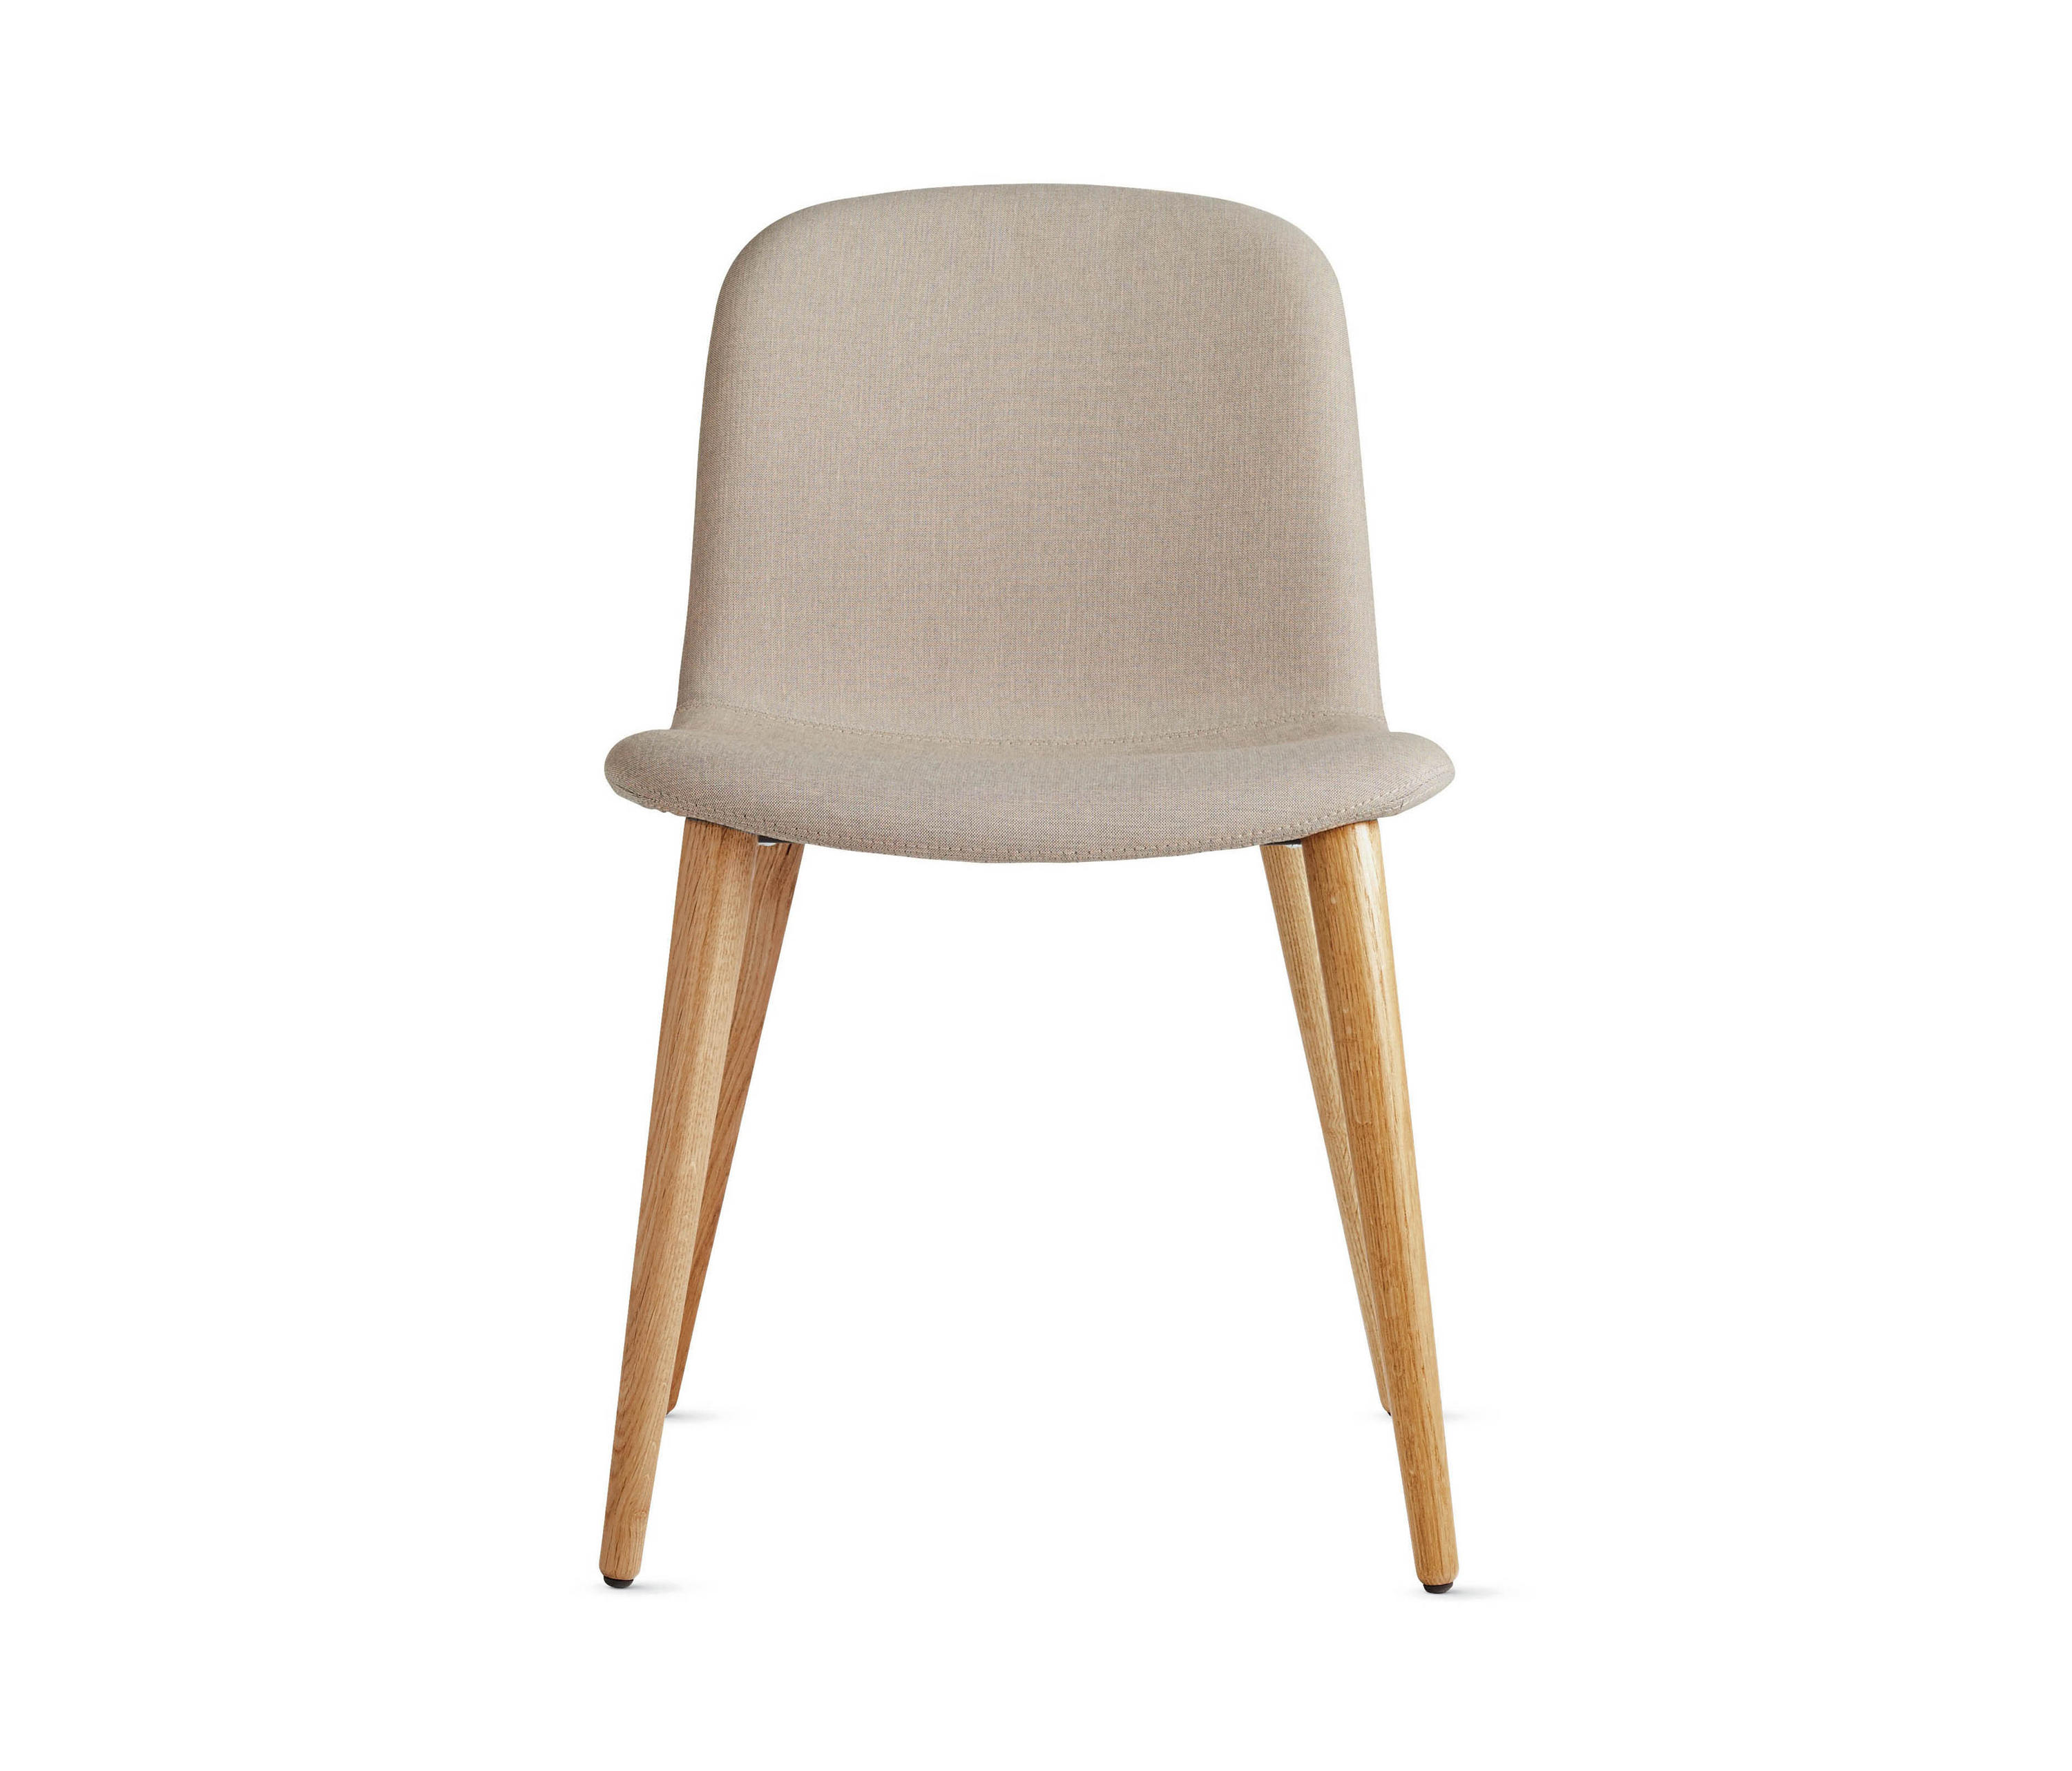 chair design within reach dining room chairs for sale bacco in fabric oak legs visitors side